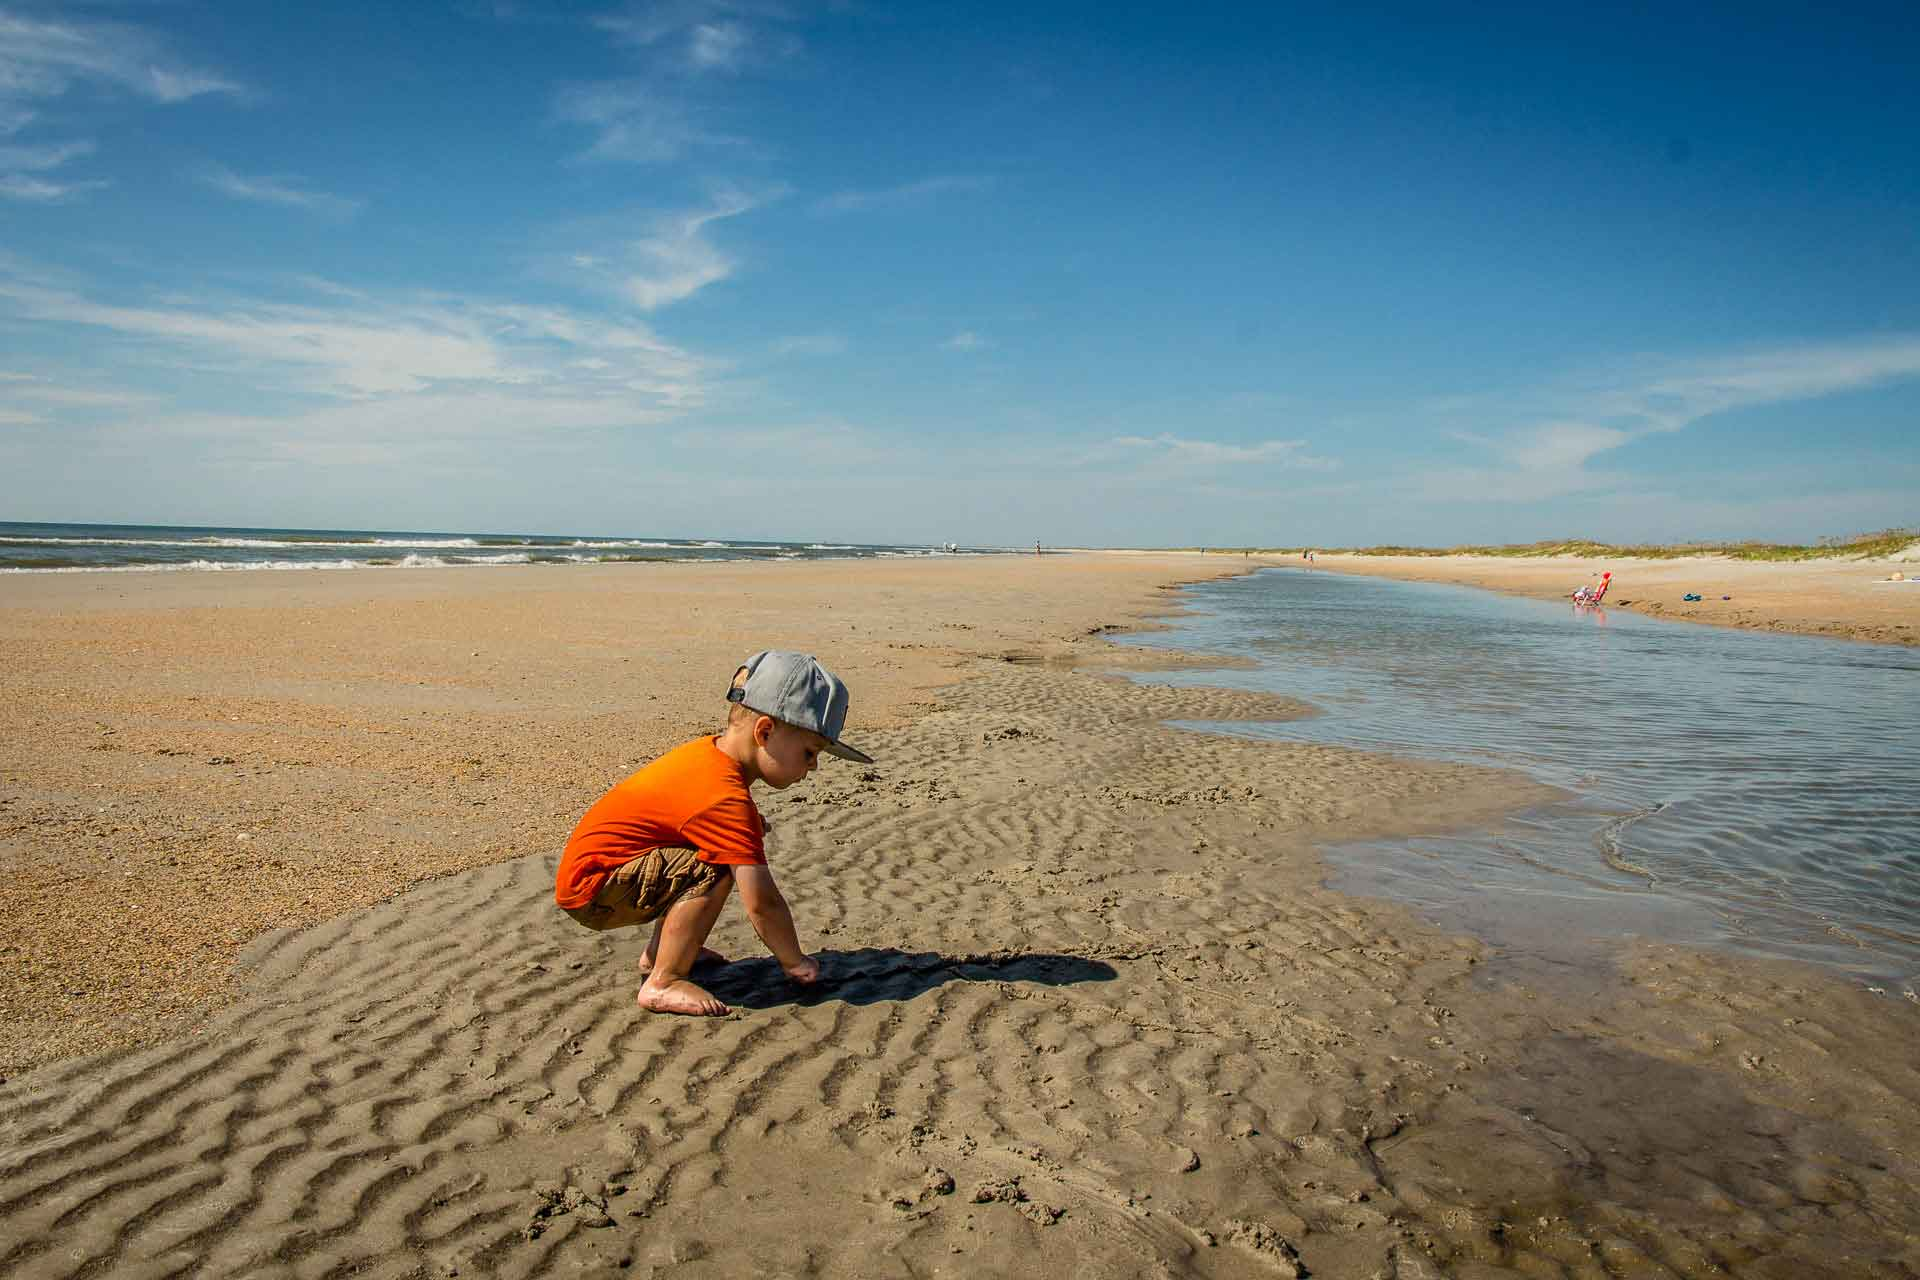 Family Can Travel - 2 Days of Outdoor Fun with Kids in Wilmington, North Carolina - Wrightsville Beach Scenic Tours Eco Tour - so much space on the beach